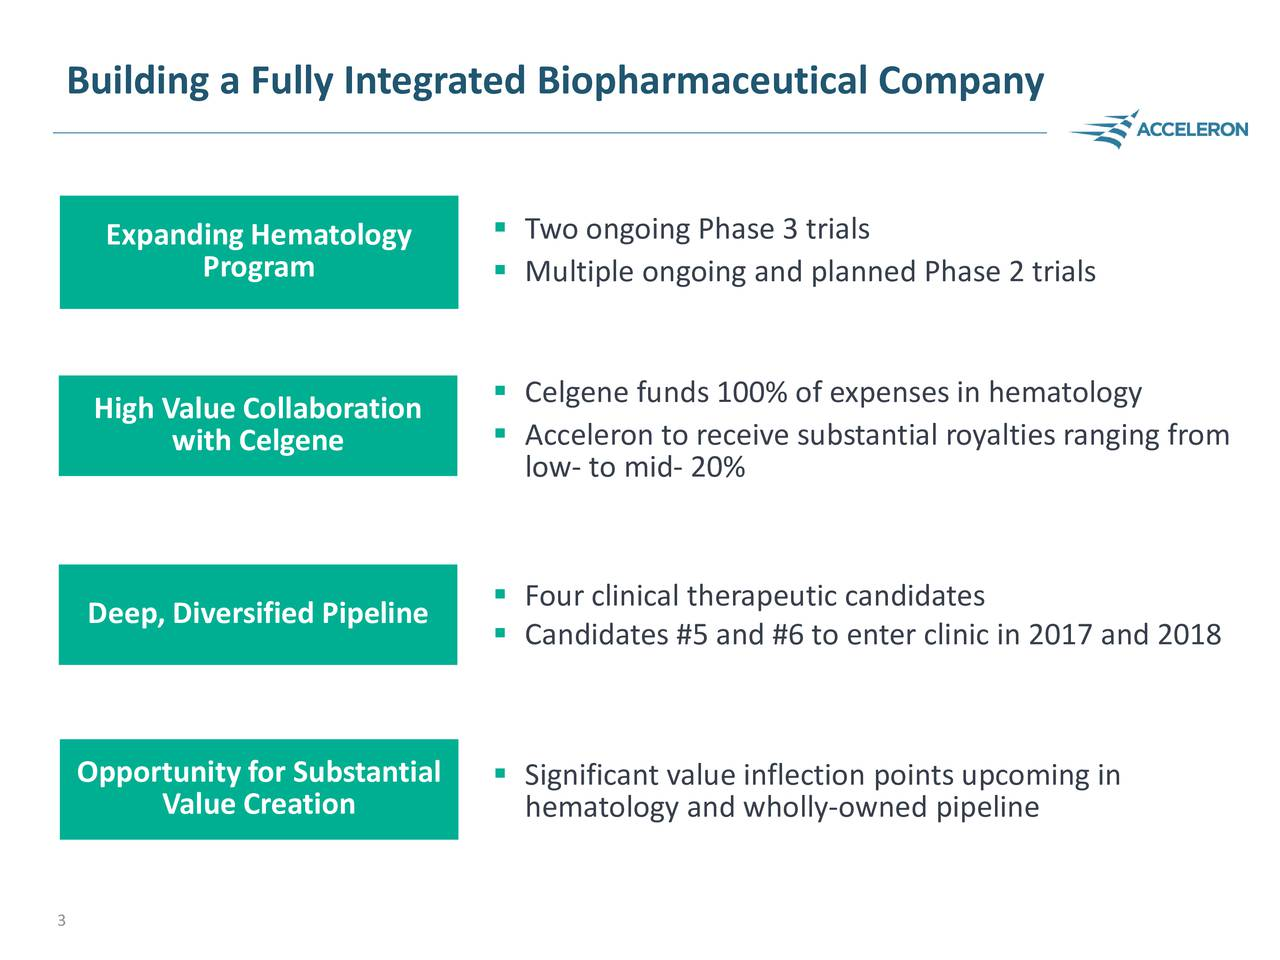 Two ongoing Phase 3 trials Expanding Hematology Program  Multiple ongoing and planned Phase 2 trials High Value Collaboration  Celgene funds 100% of expenses in hematology with Celgene  Acceleron to receive substantial royalties ranging from low- to mid- 20% Deep, Diversified Pipeline  Four clinical therapeutic candidates Candidates #5 and #6 to enter clinic in 2017 and 2018 Opportunity for Substantial Value Creation  Significant value inflection points upcoming in hematology and wholly-owned pipeline 3